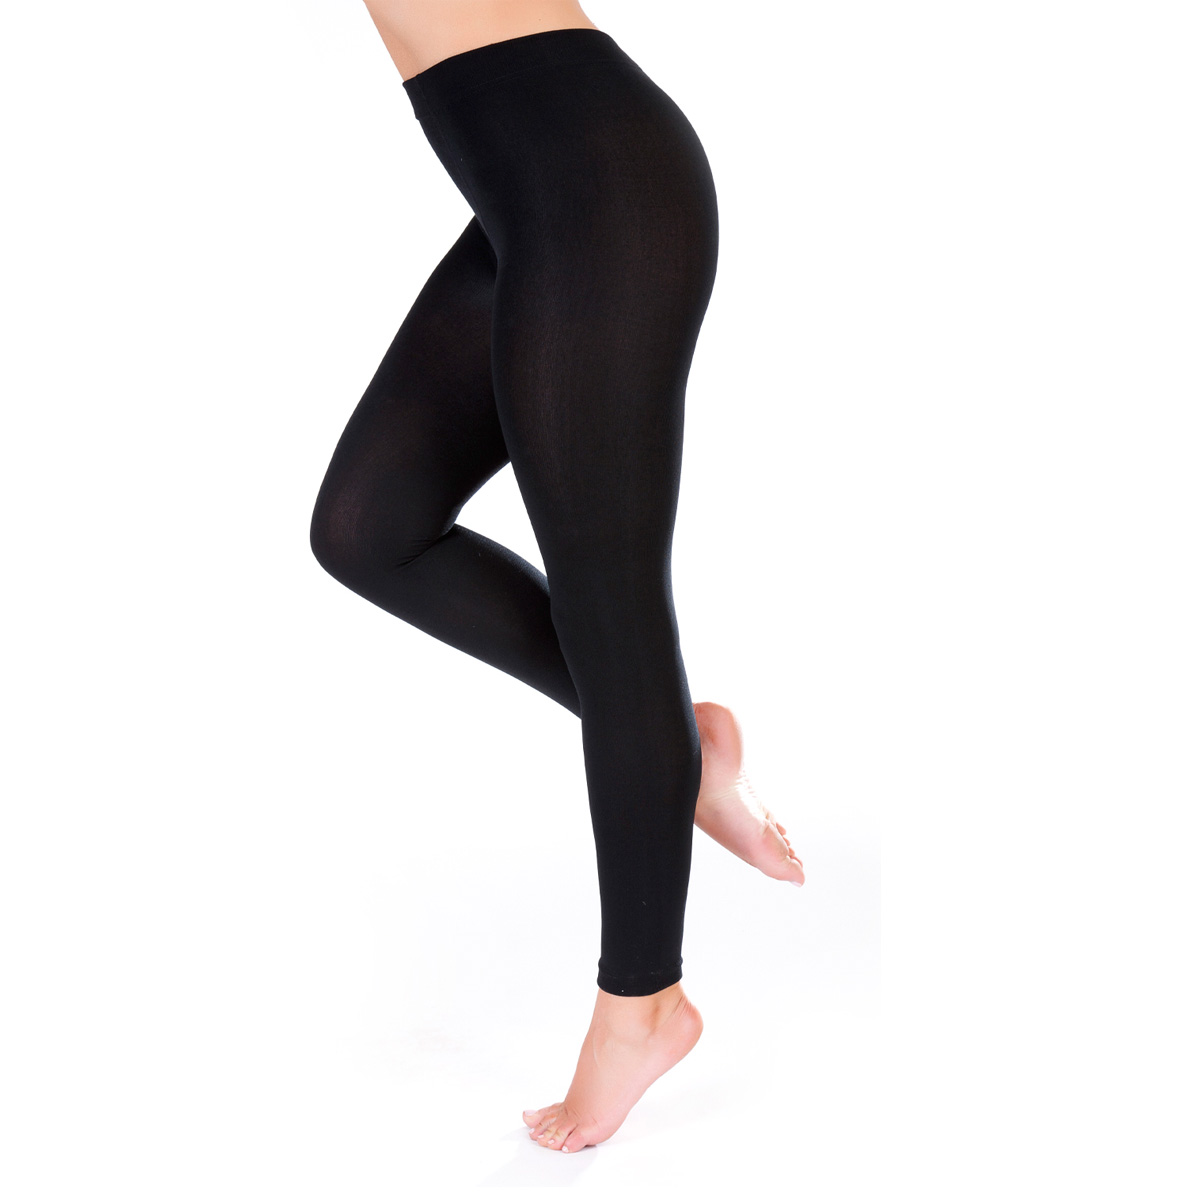 FREE SHIPPING - Look on trend and stay warm and cozy with our selection of winter leggings at the best prices for leggings online.